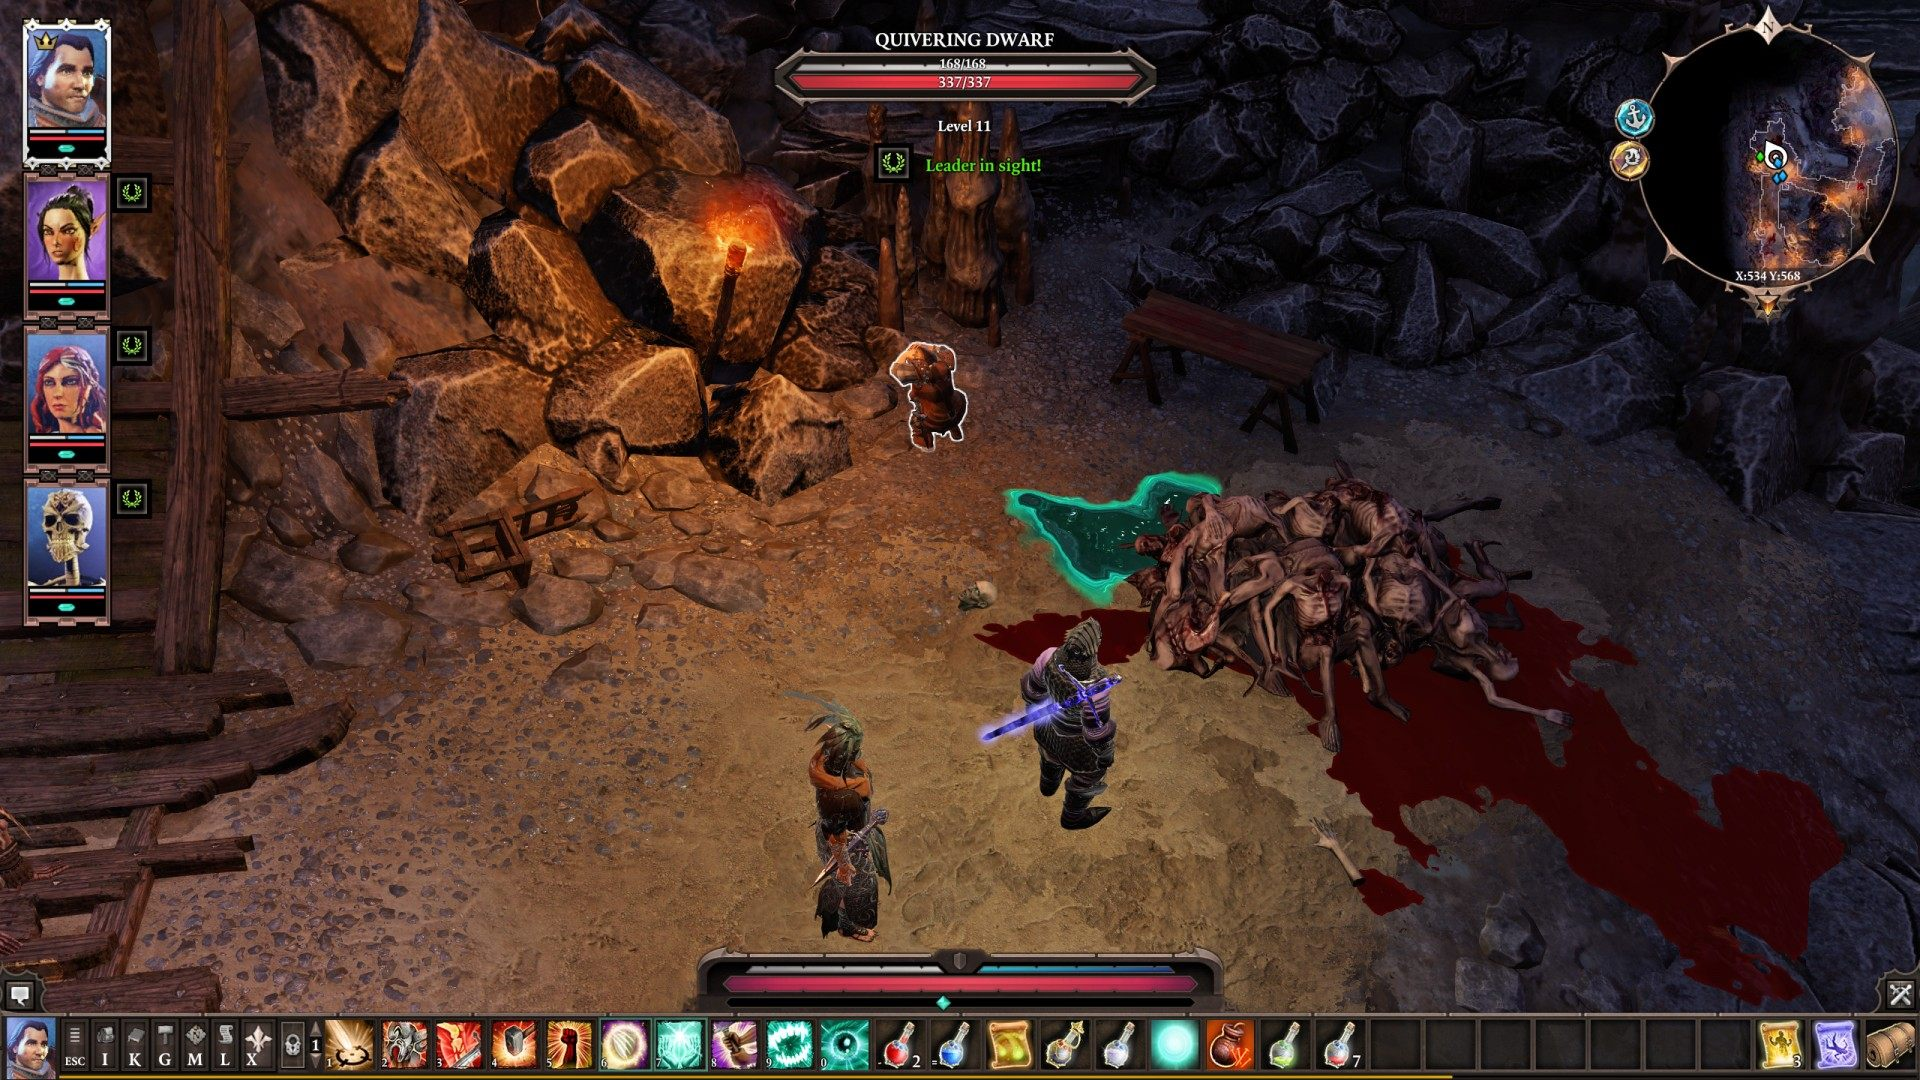 Shadow over Driftwood, Divinity: Original Sin 2 Quest